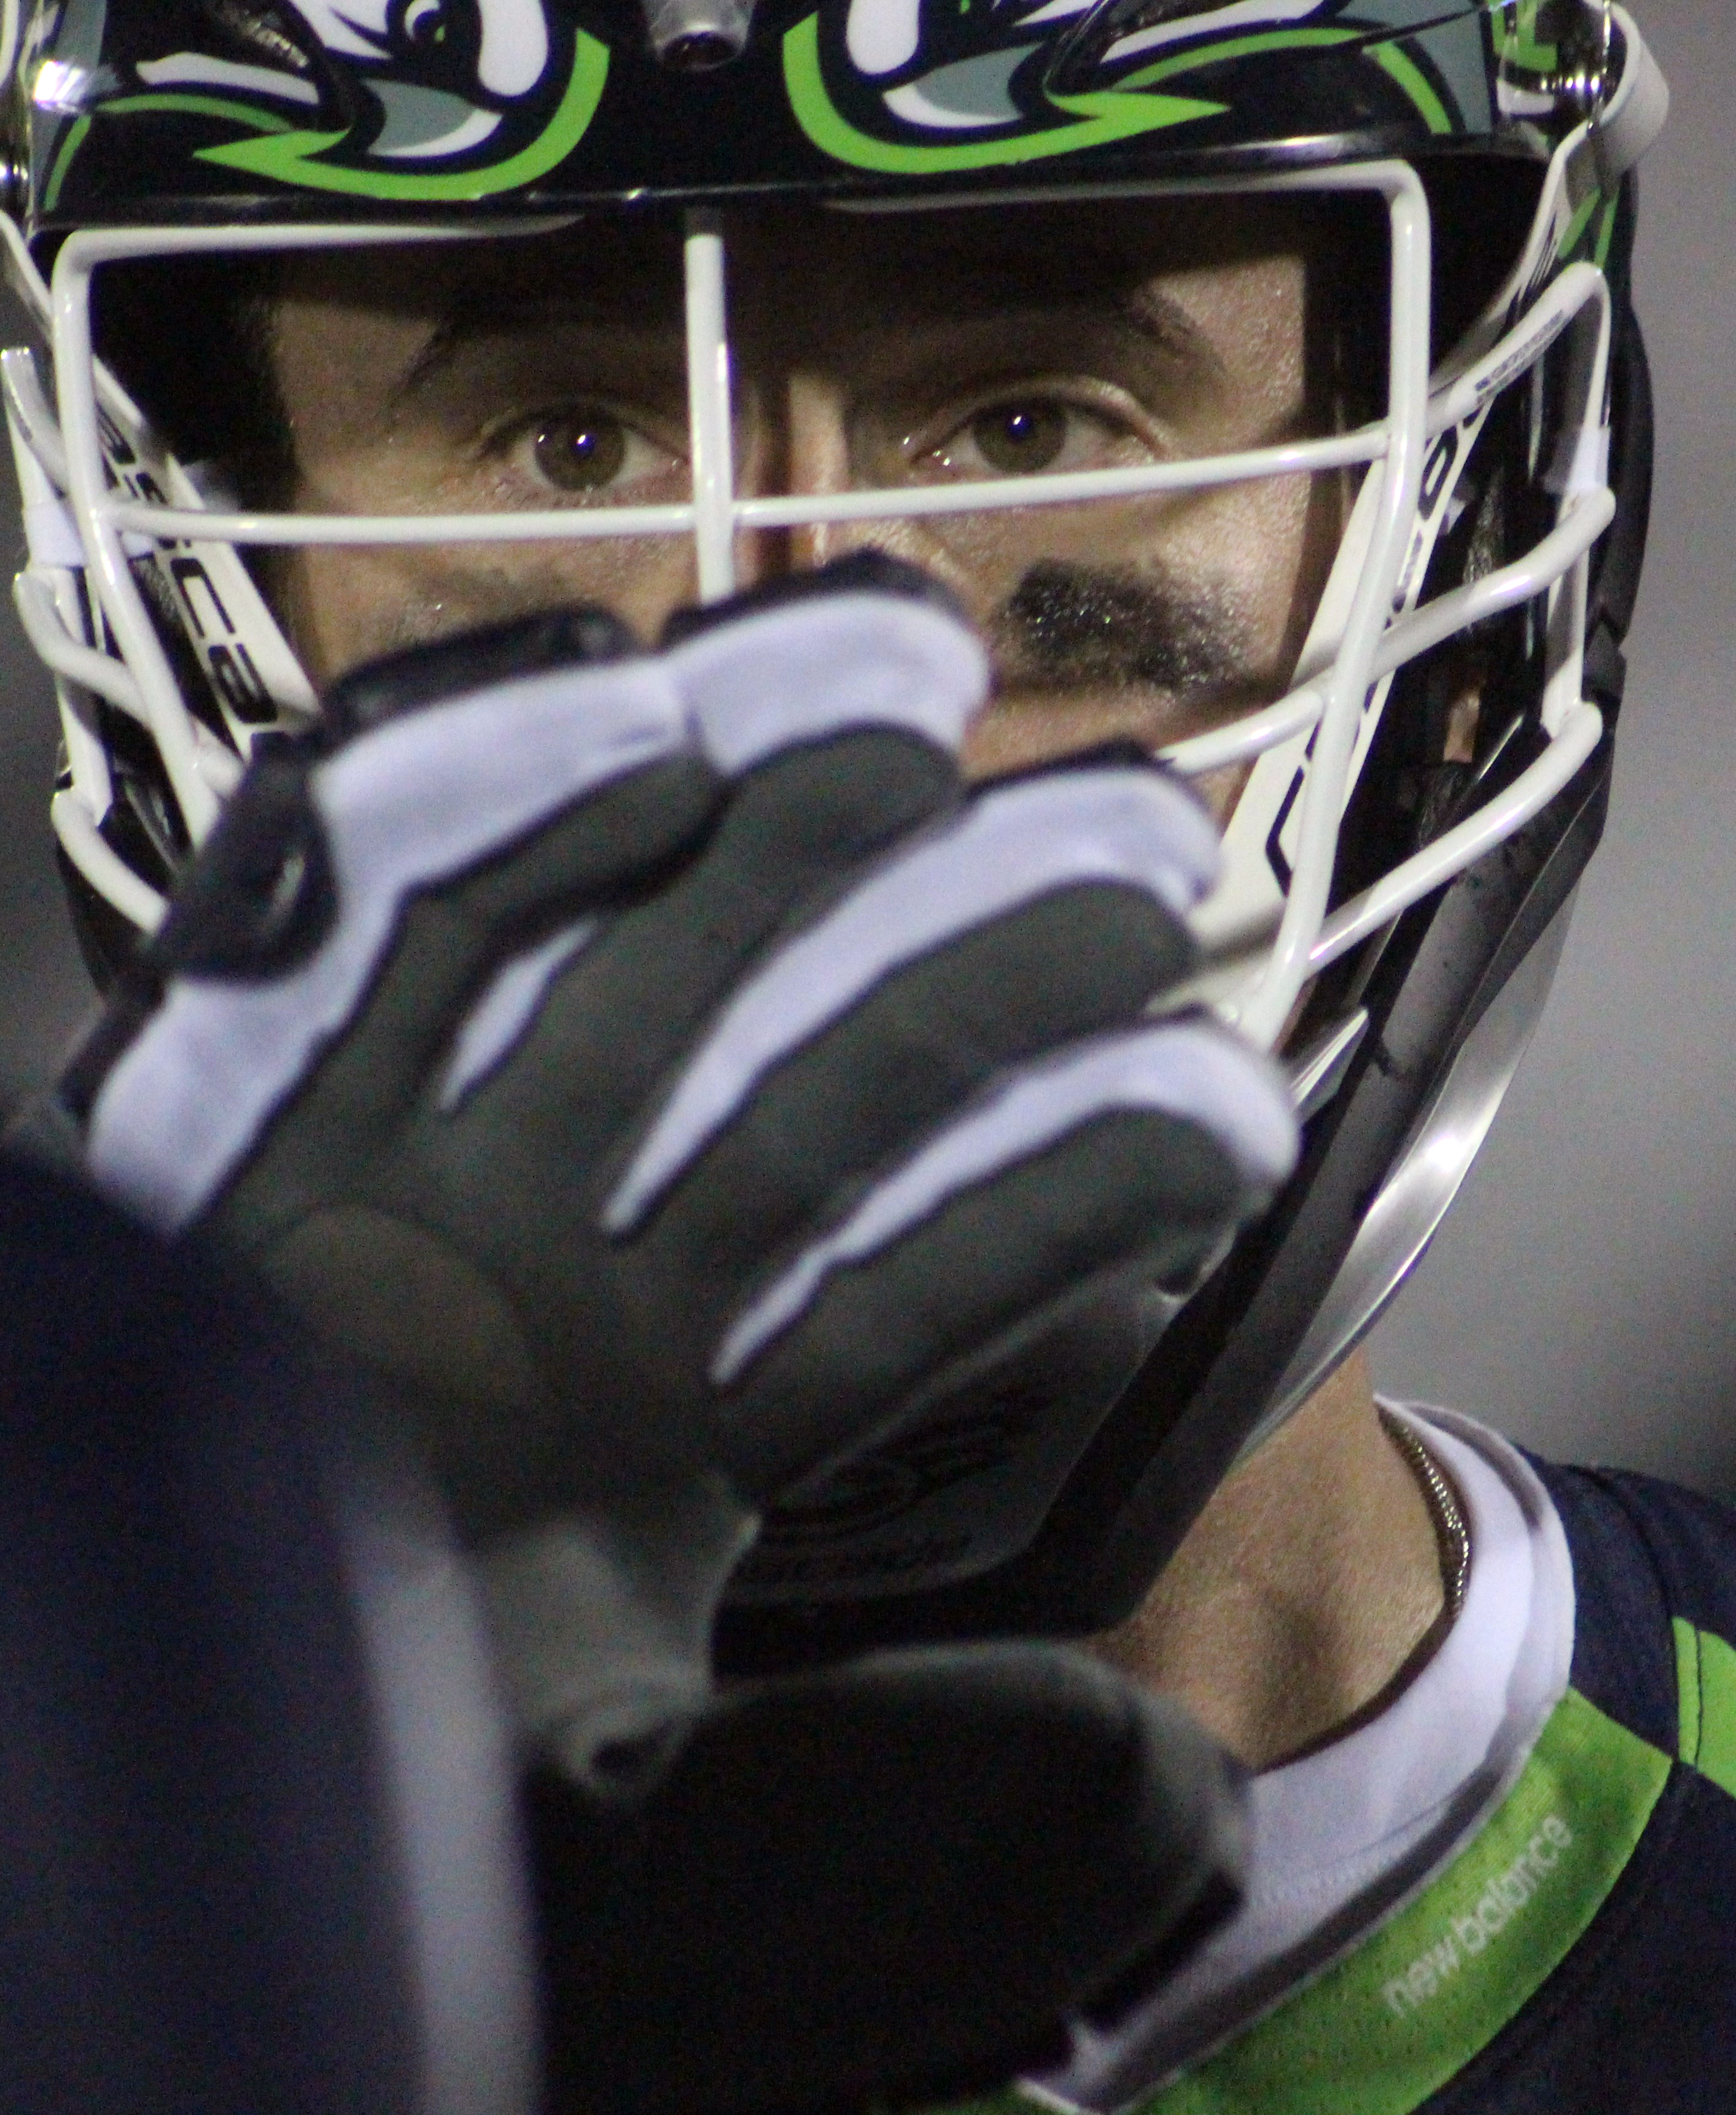 PHOTOS: Outlaws @ Bayhawks – In Lacrosse We Trust